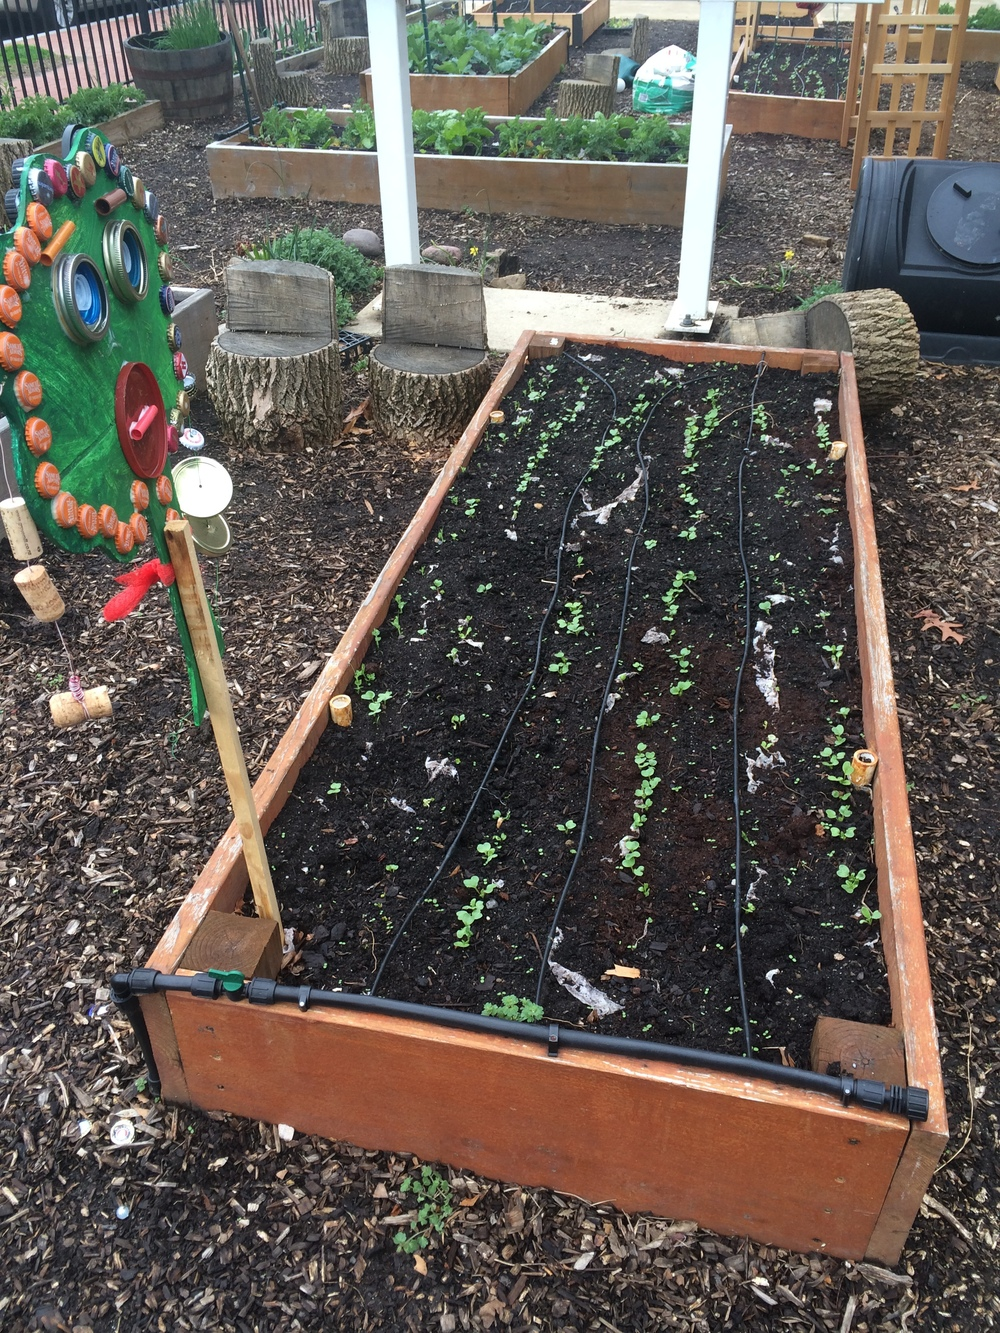 Look at our garden grow in perfectly spaced rows!